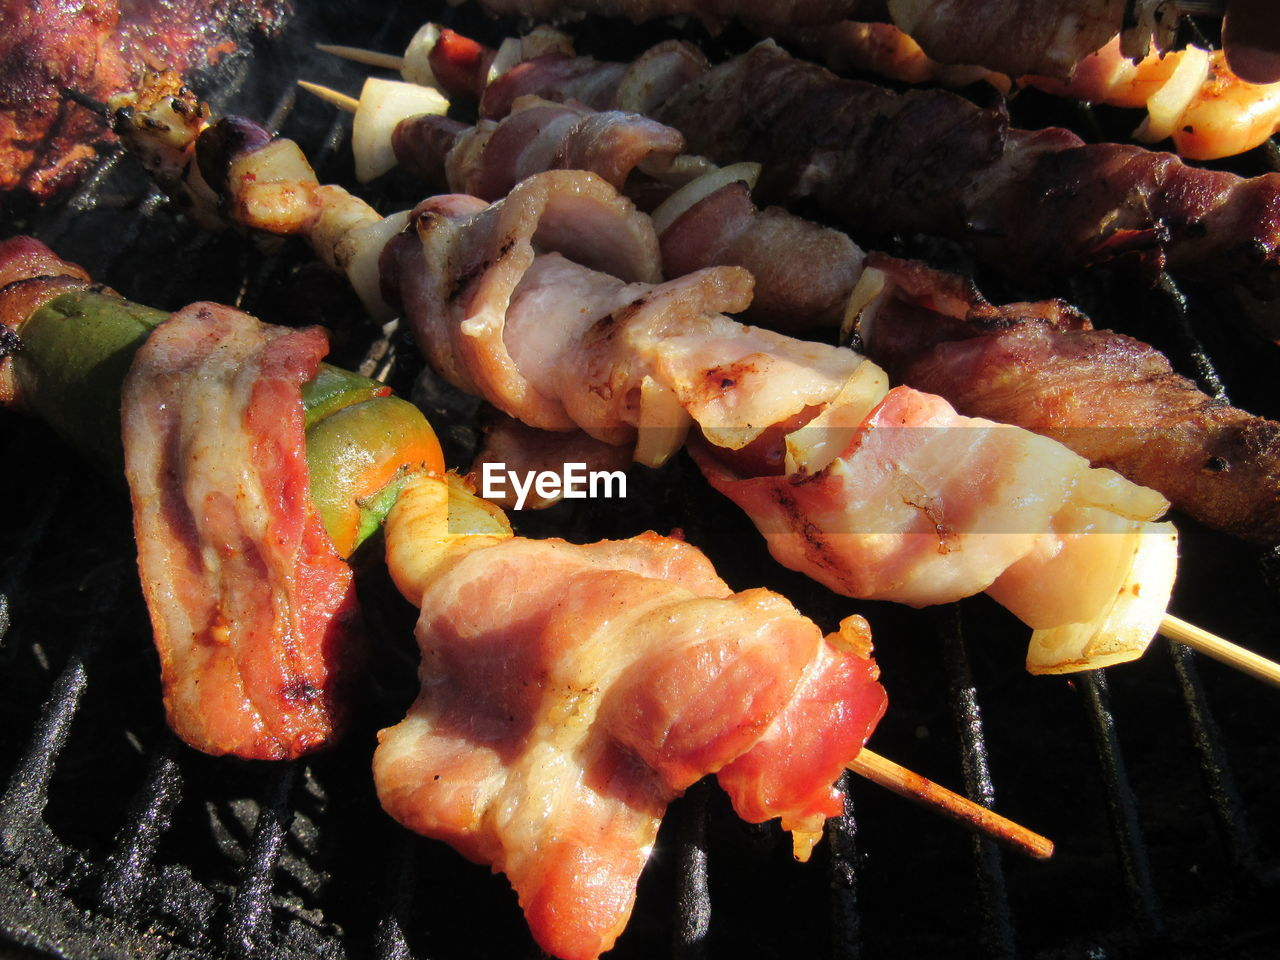 food and drink, barbecue, food, grilled, barbecue grill, skewer, meat, freshness, no people, heat - temperature, healthy eating, close-up, chicken wing, ready-to-eat, outdoors, day